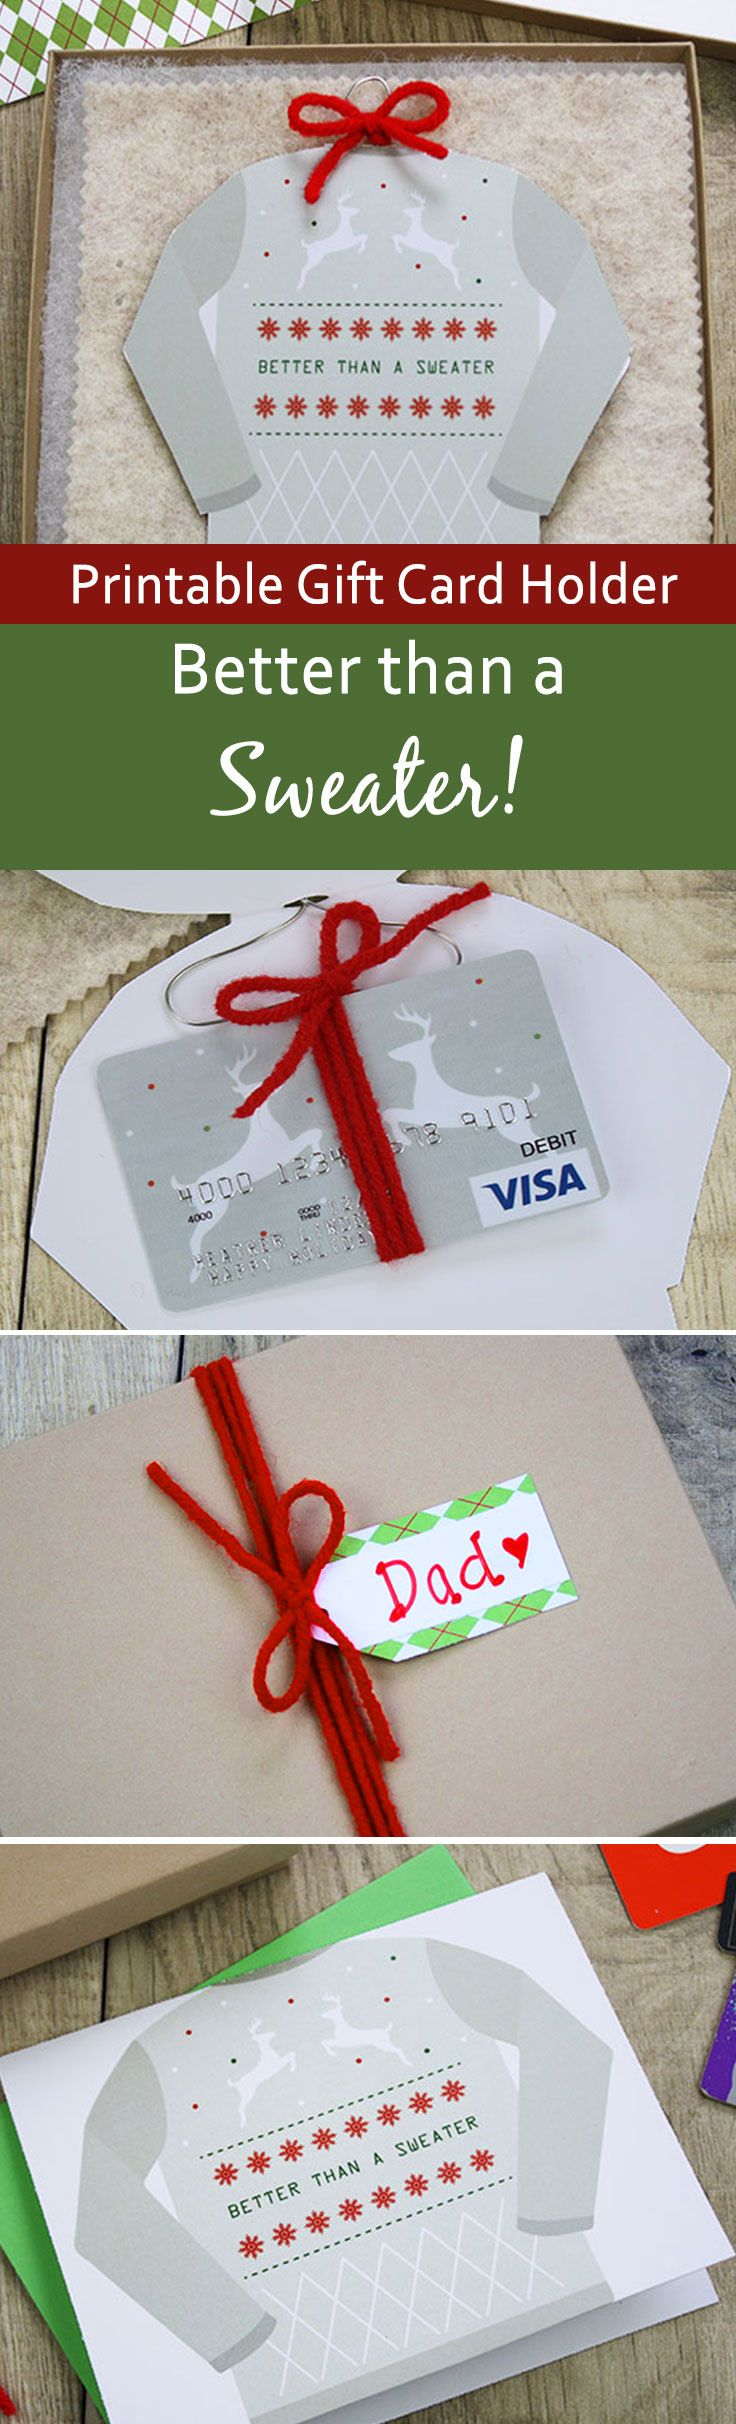 Best 25 restaurant gift cards ideas on pinterest gift card whats better than an ugly holiday sweater a gift card of course print restaurant xflitez Images